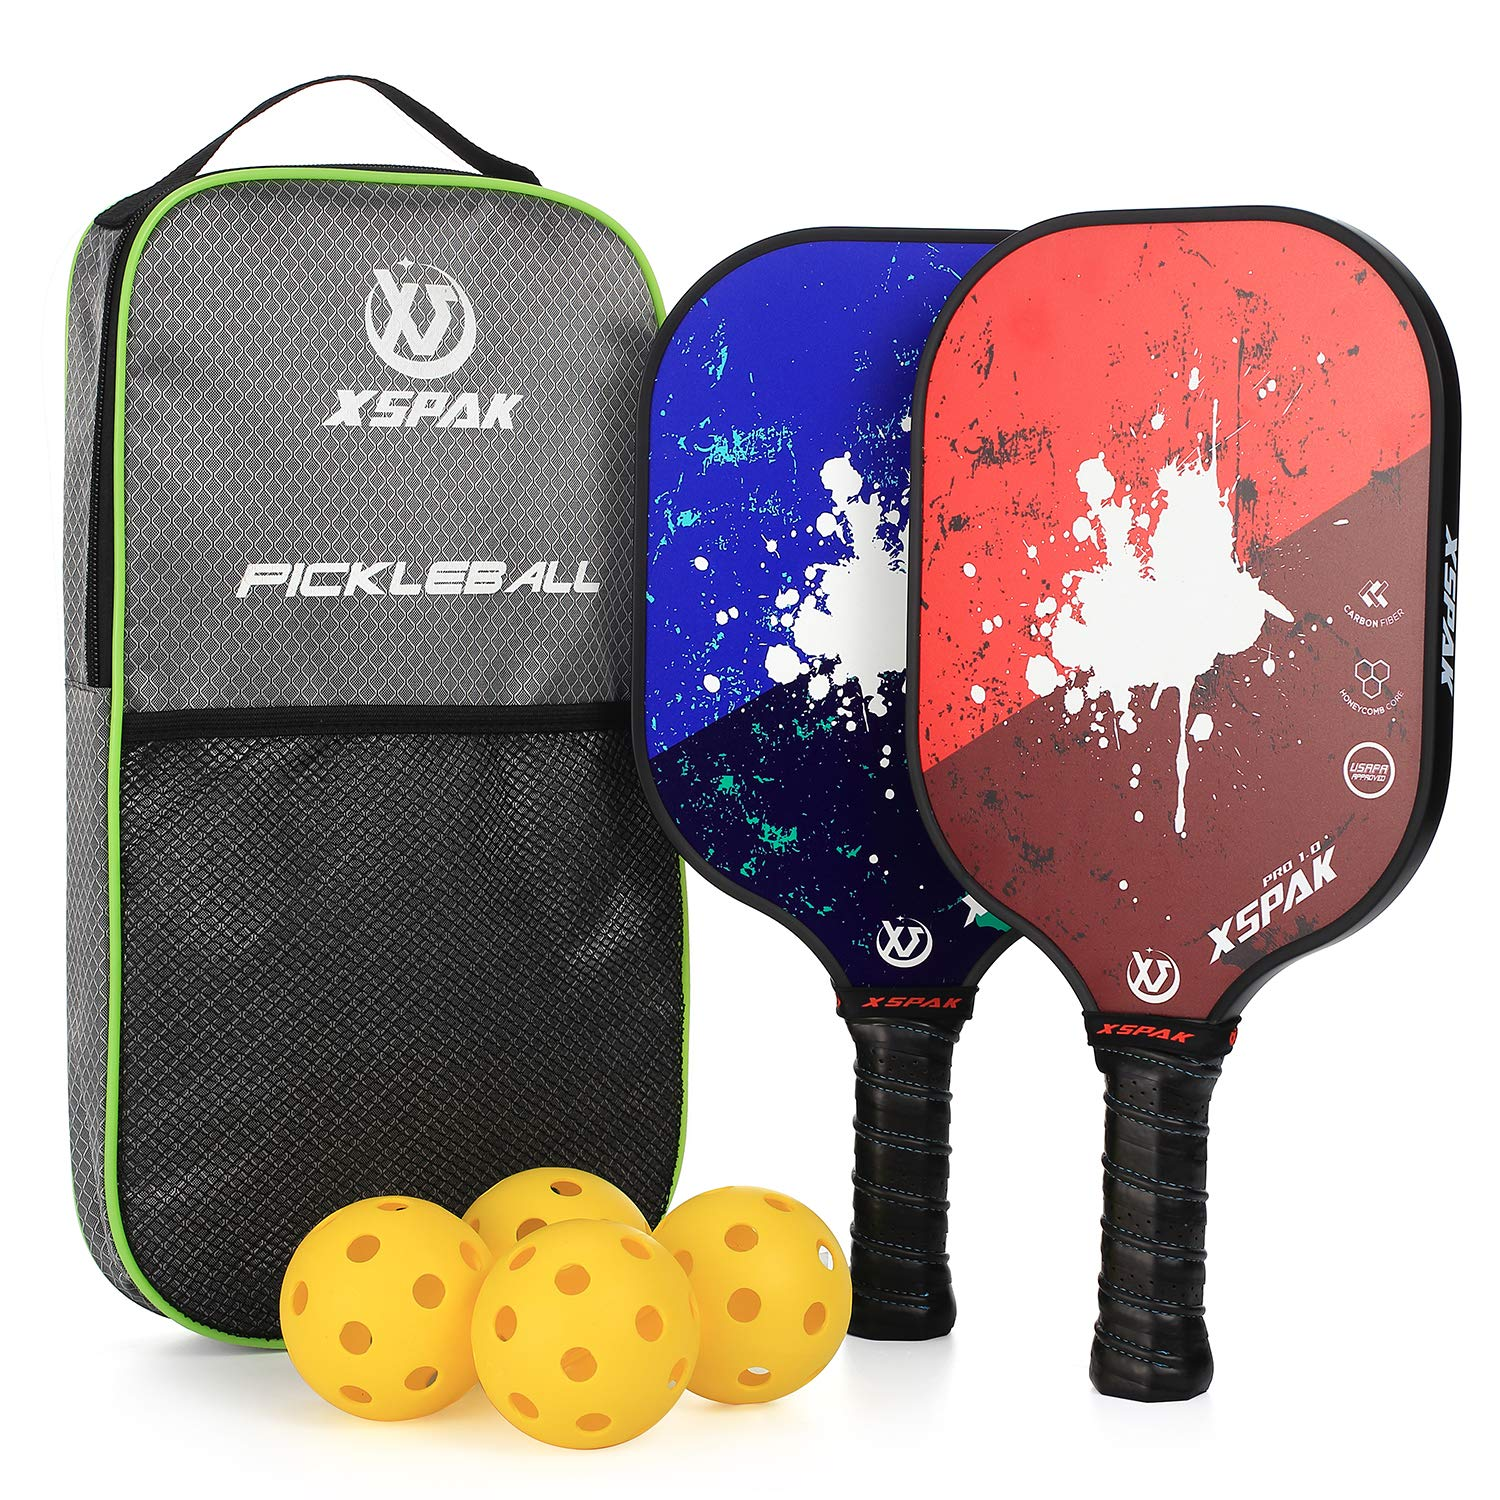 XS XSPAK Graphite Pickleball Paddle Set, Lightweight Graphite Honeycomb Composite Core Paddles Sets of 2 Including Racket Bag and 4 Balls, USAPA Approved by XS XSPAK